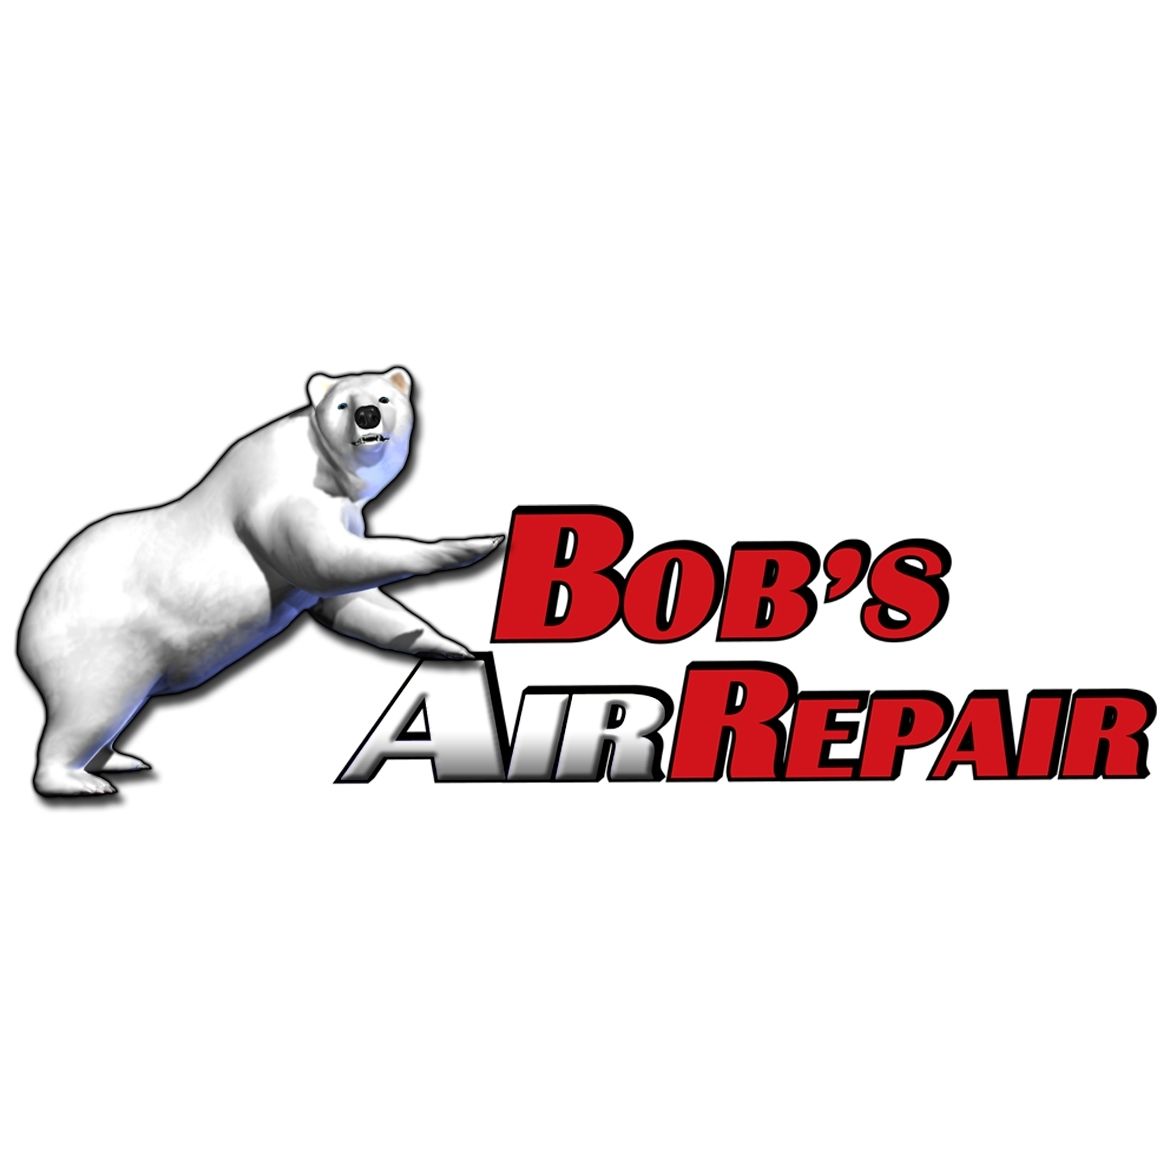 Bob's Air Repair - Chico, CA 95928 - (530)927-5132 | ShowMeLocal.com